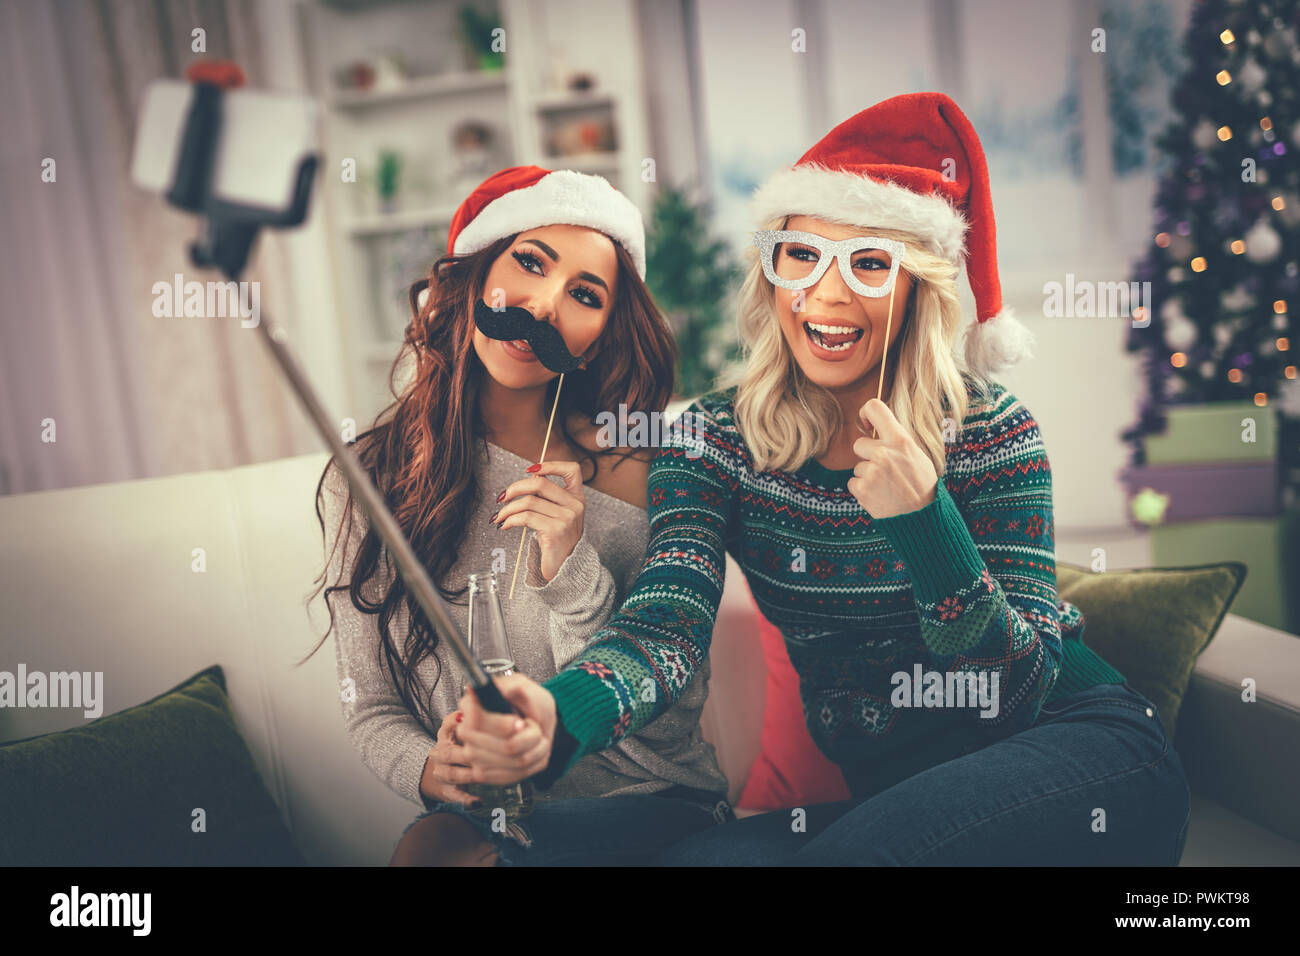 Funny female friends having nice time taking selfie in an apartment. - Stock Image